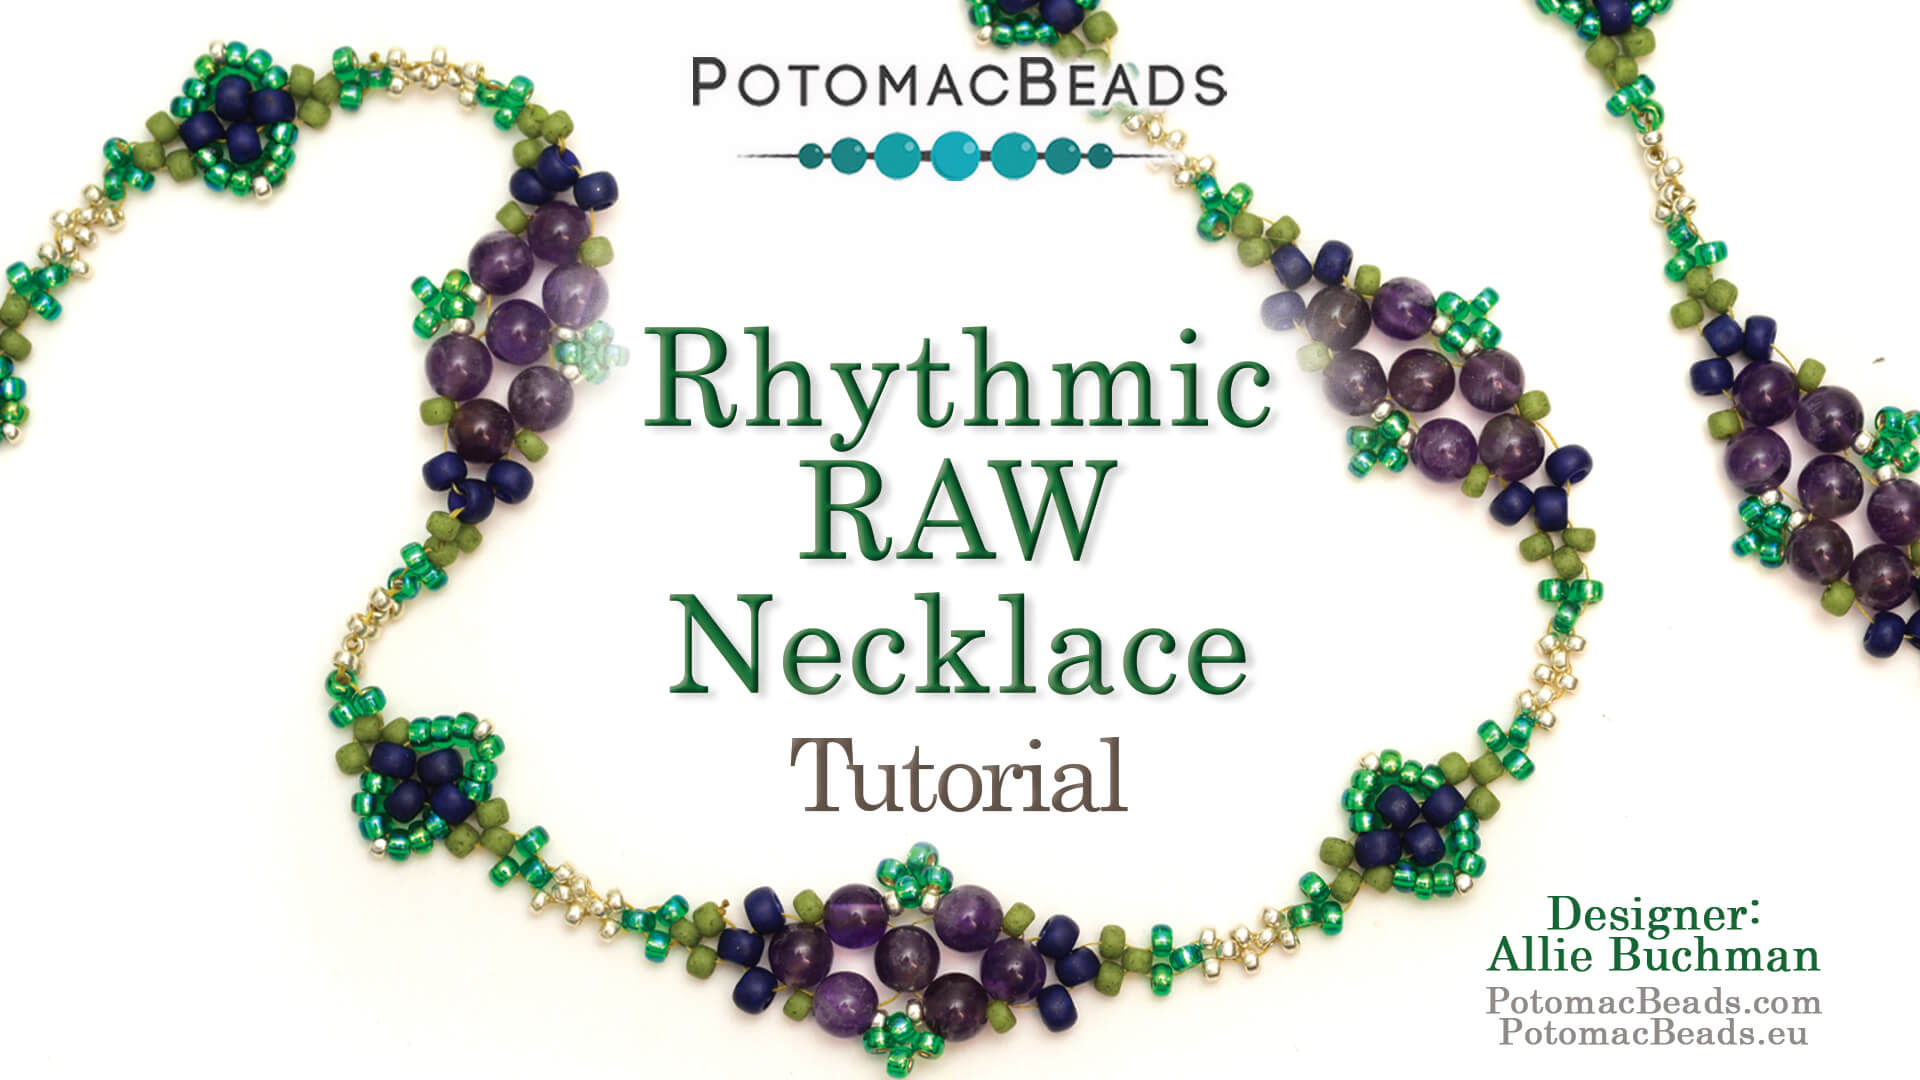 How to Bead Jewelry / Videos Sorted by Beads / Gemstone Videos / Rhythmic Raw Necklace Tutorial